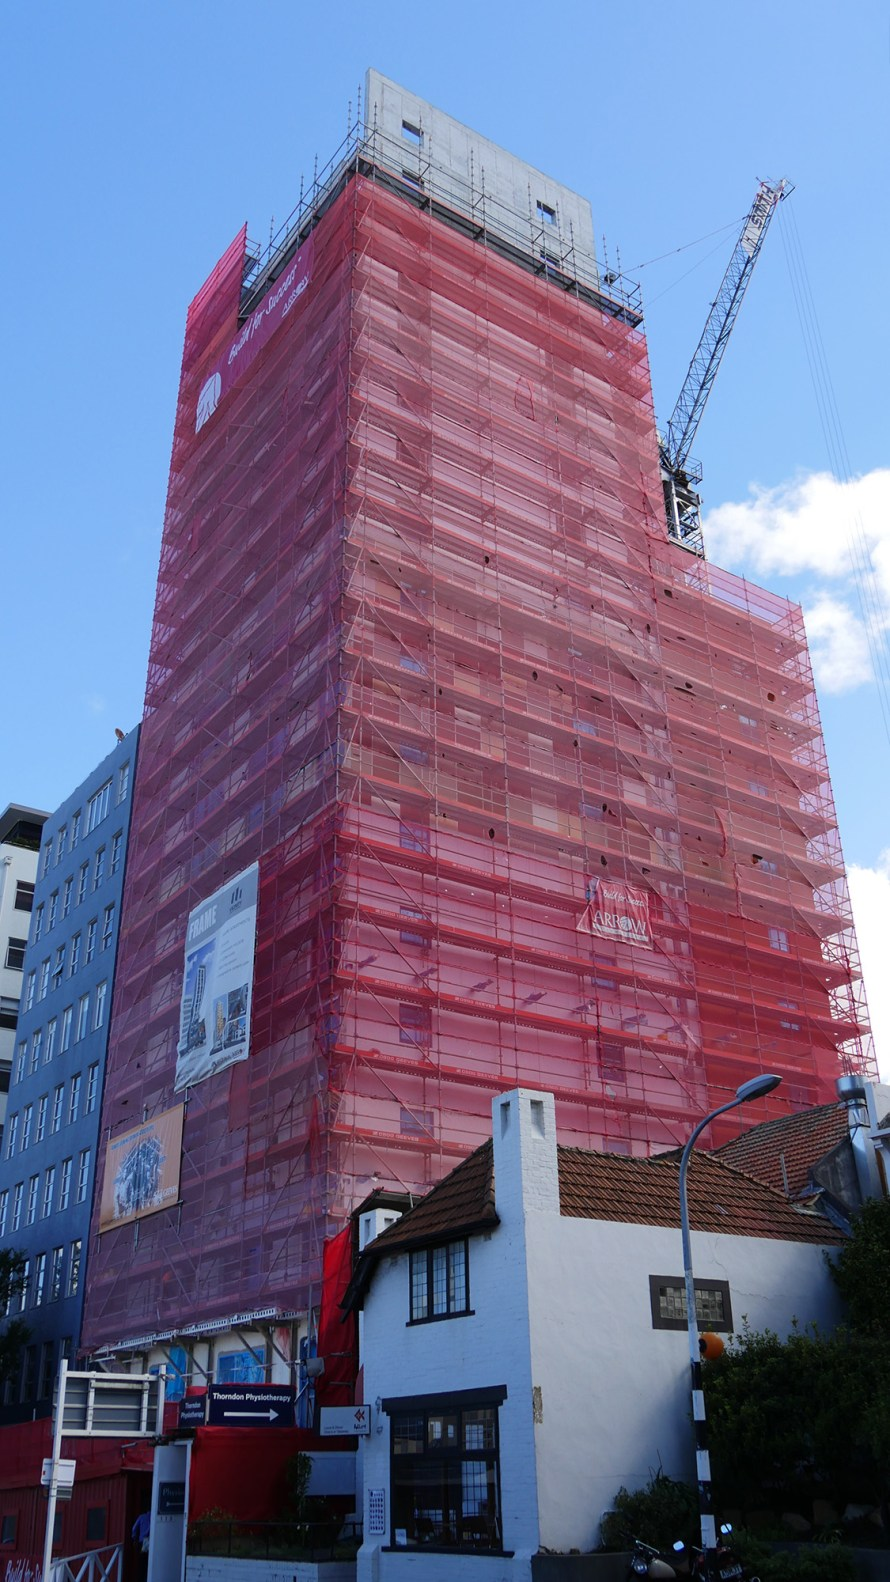 A particularly good innovation was erecting the scaffold on brackets which allowed egress in the event of an emergenc